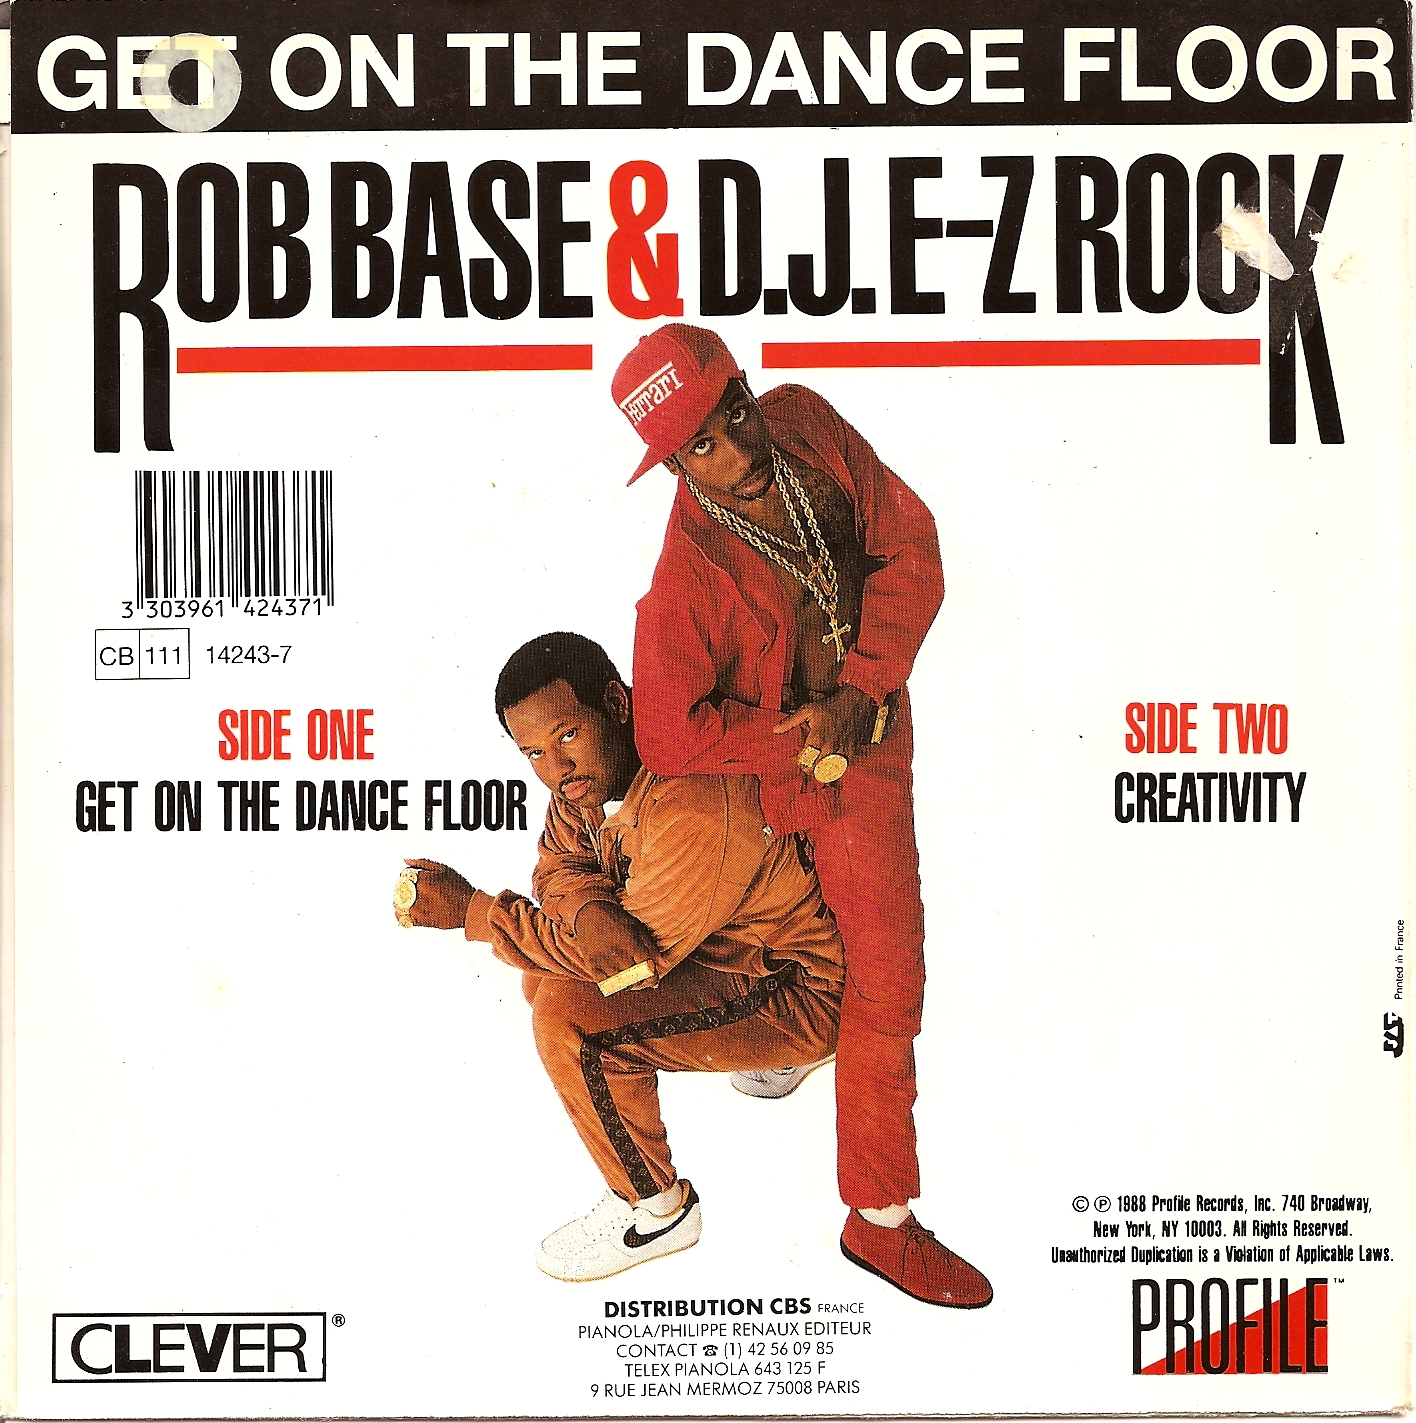 Zorba le break rob base d j e z rock get on the for 1233 get on the dance floor